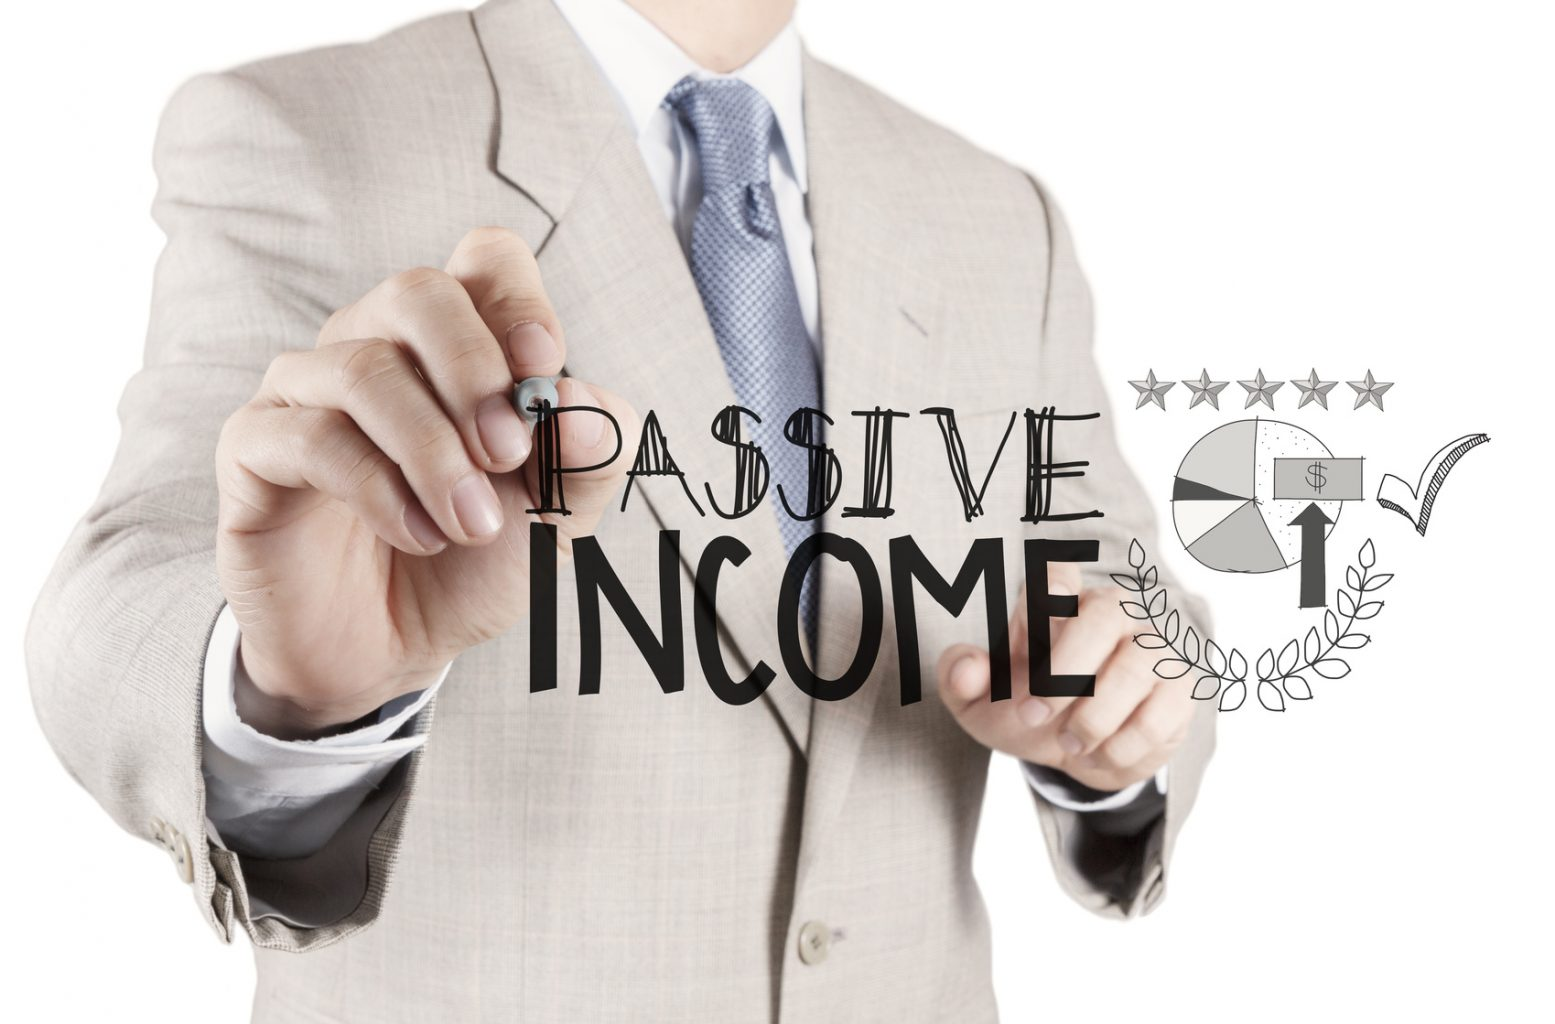 5 Inspiring Ways to Make Passive Income (and What to Do With It)